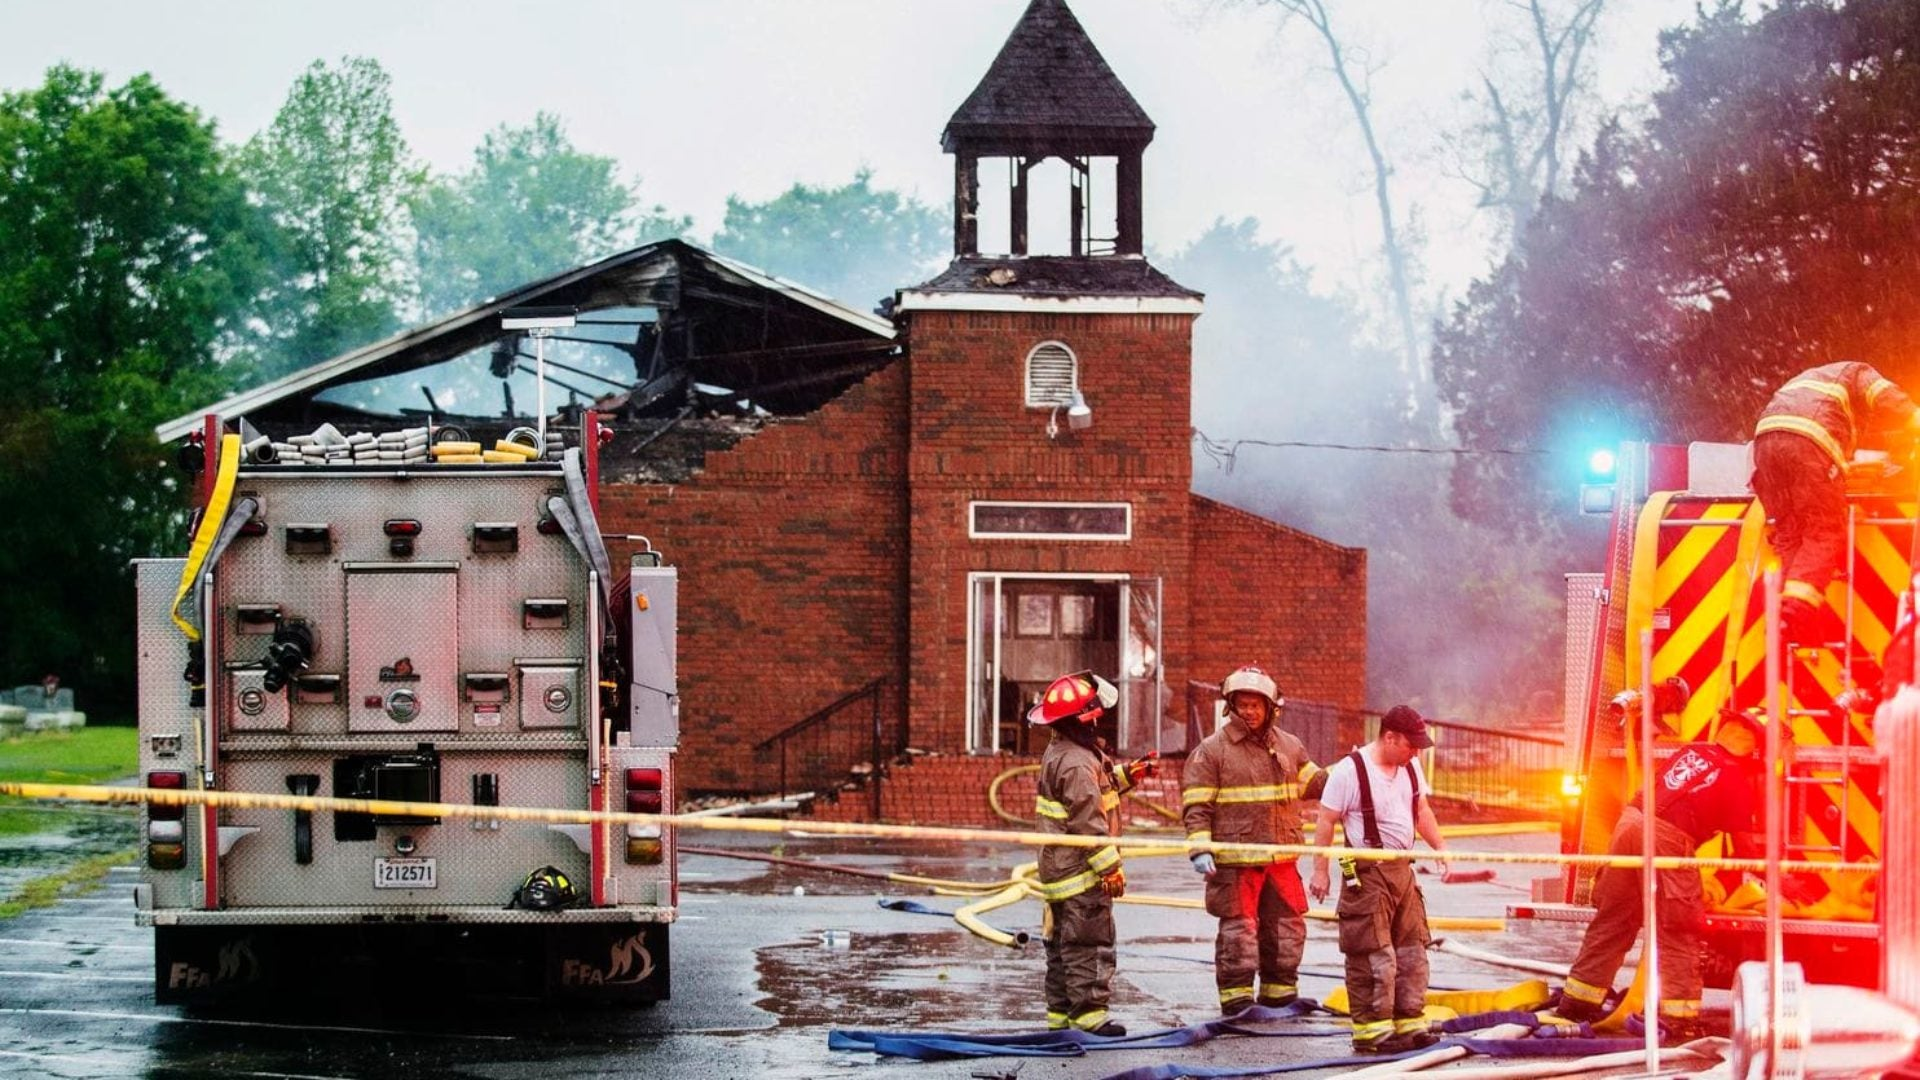 FBI Joins Investigation Of Suspicious Fires At Three Historically Black Churches In Louisiana